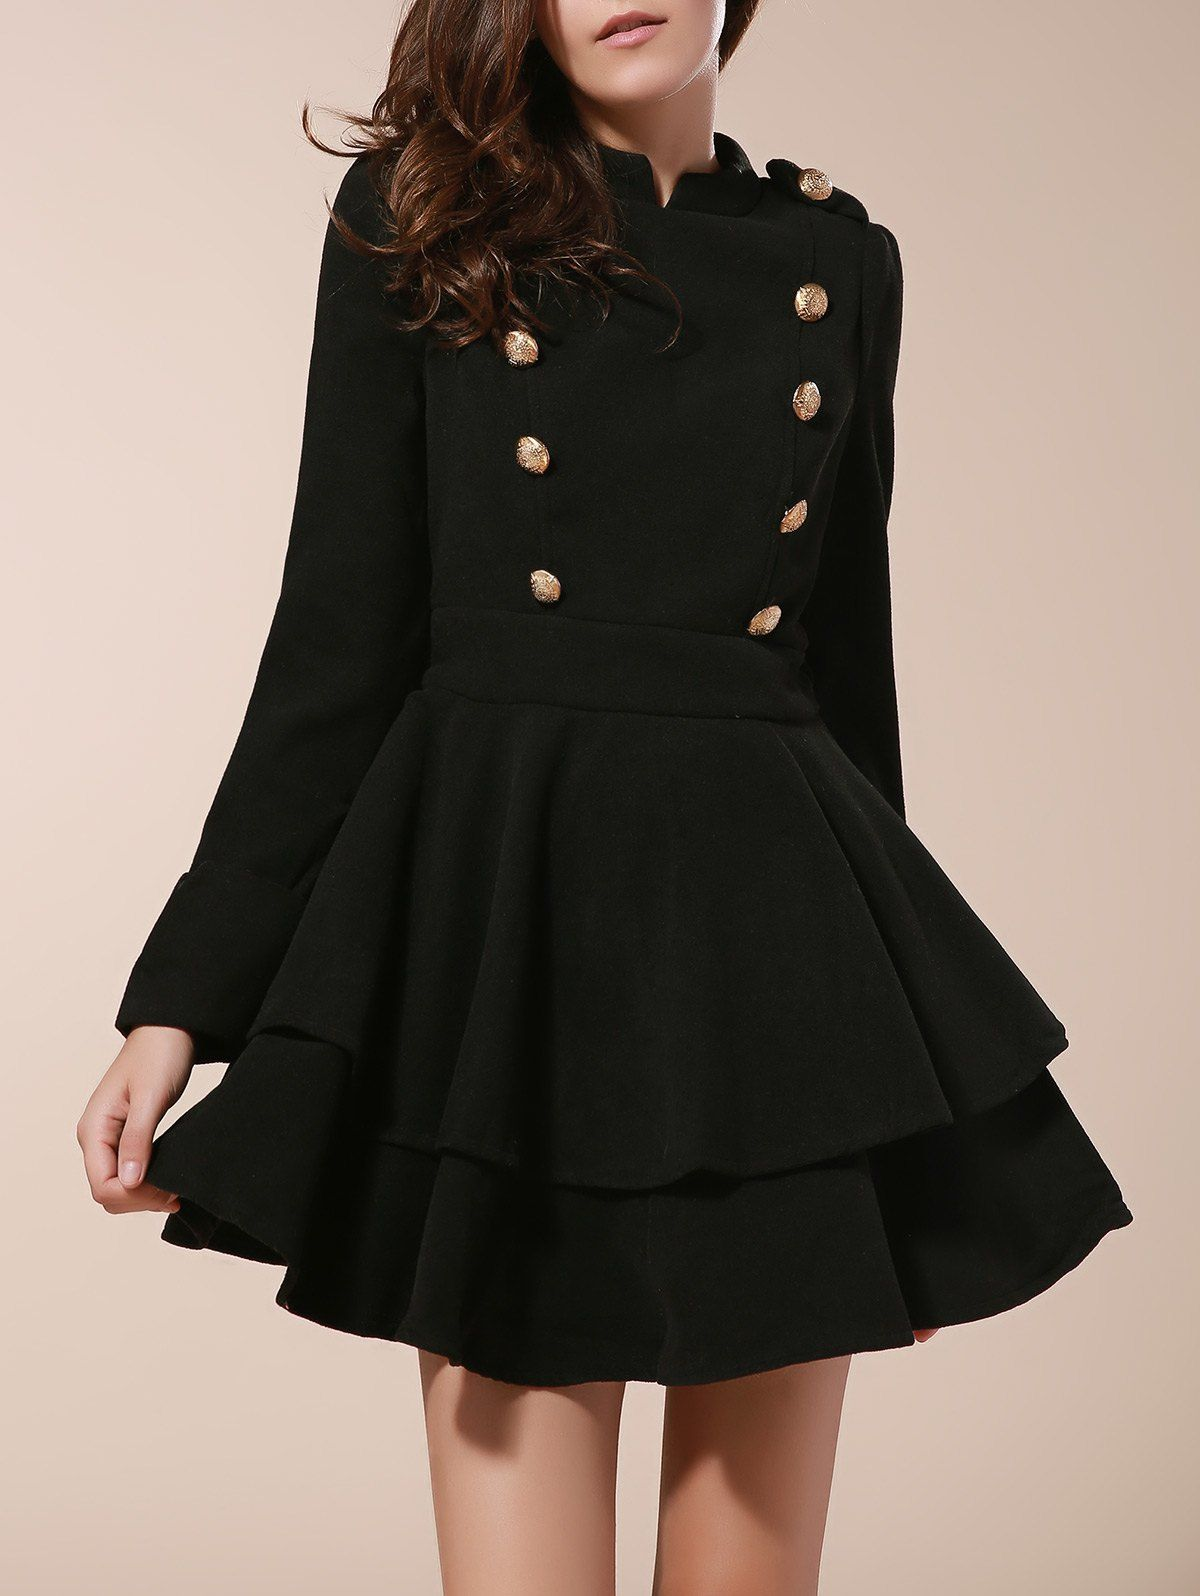 Vintage Stand Collar Buttons Embellished Long Sleeve Ruffles Womenus